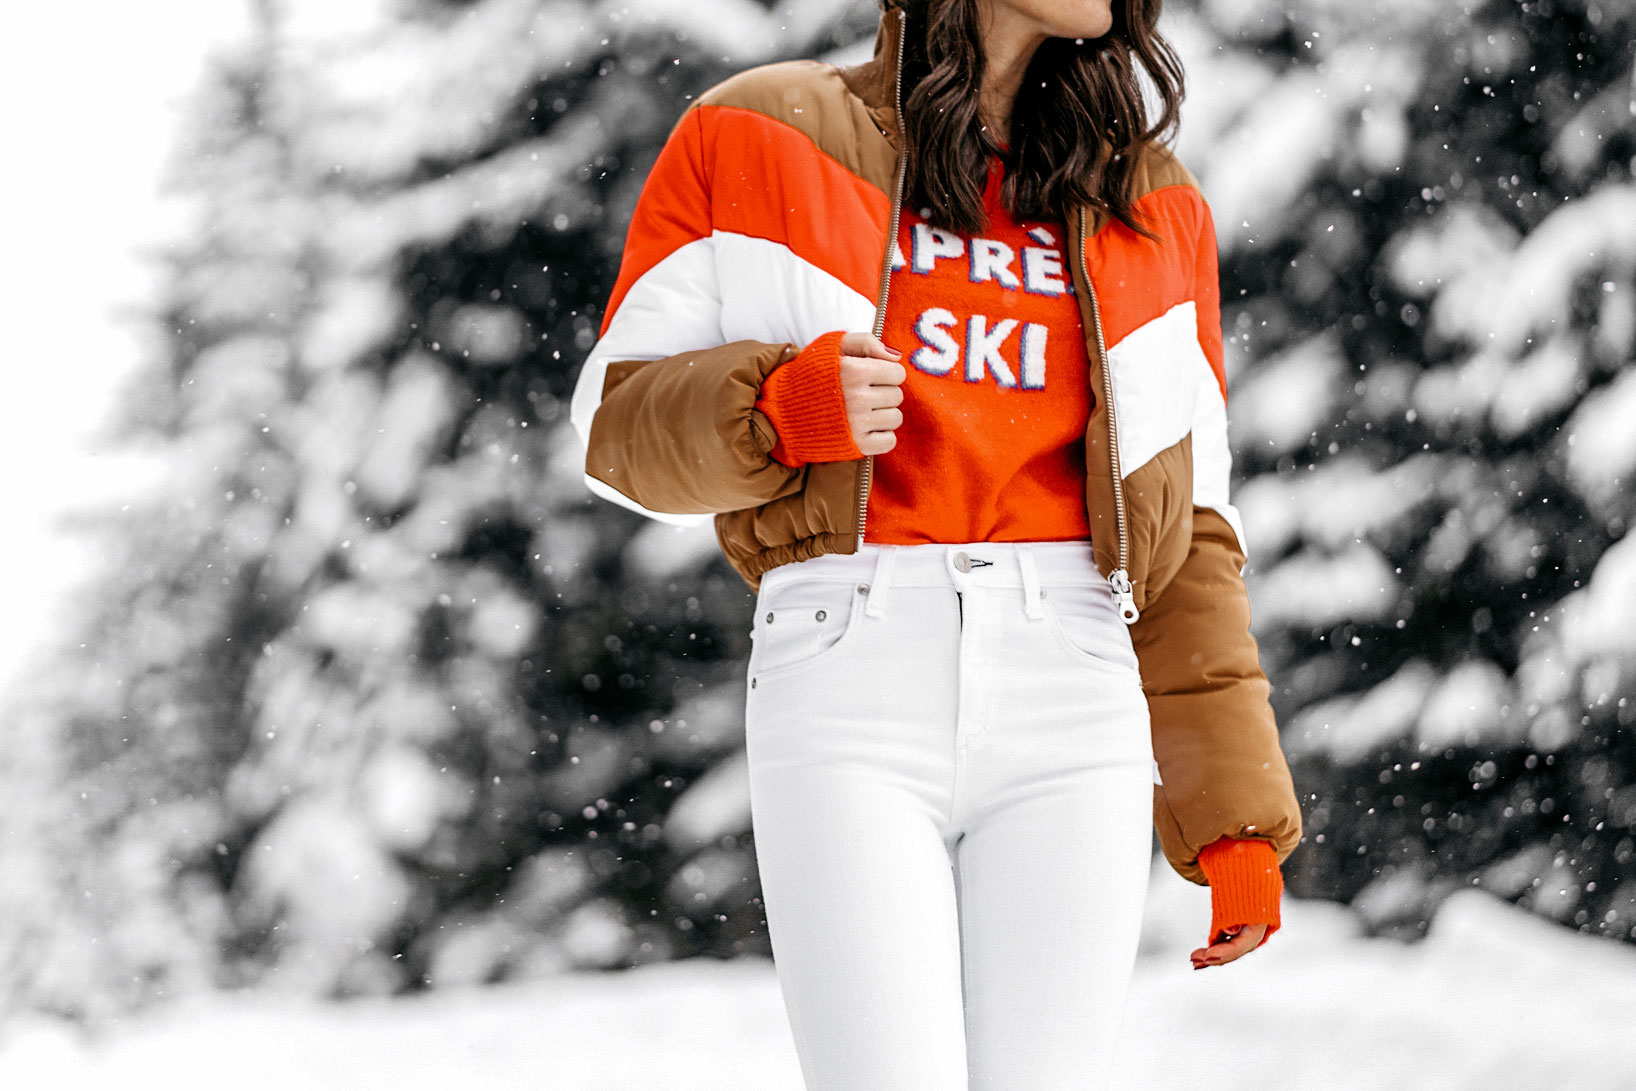 apres-ski-sweater-striped-vintage-puffer-coat-winter-snow-outfit-whistler-9.jpg